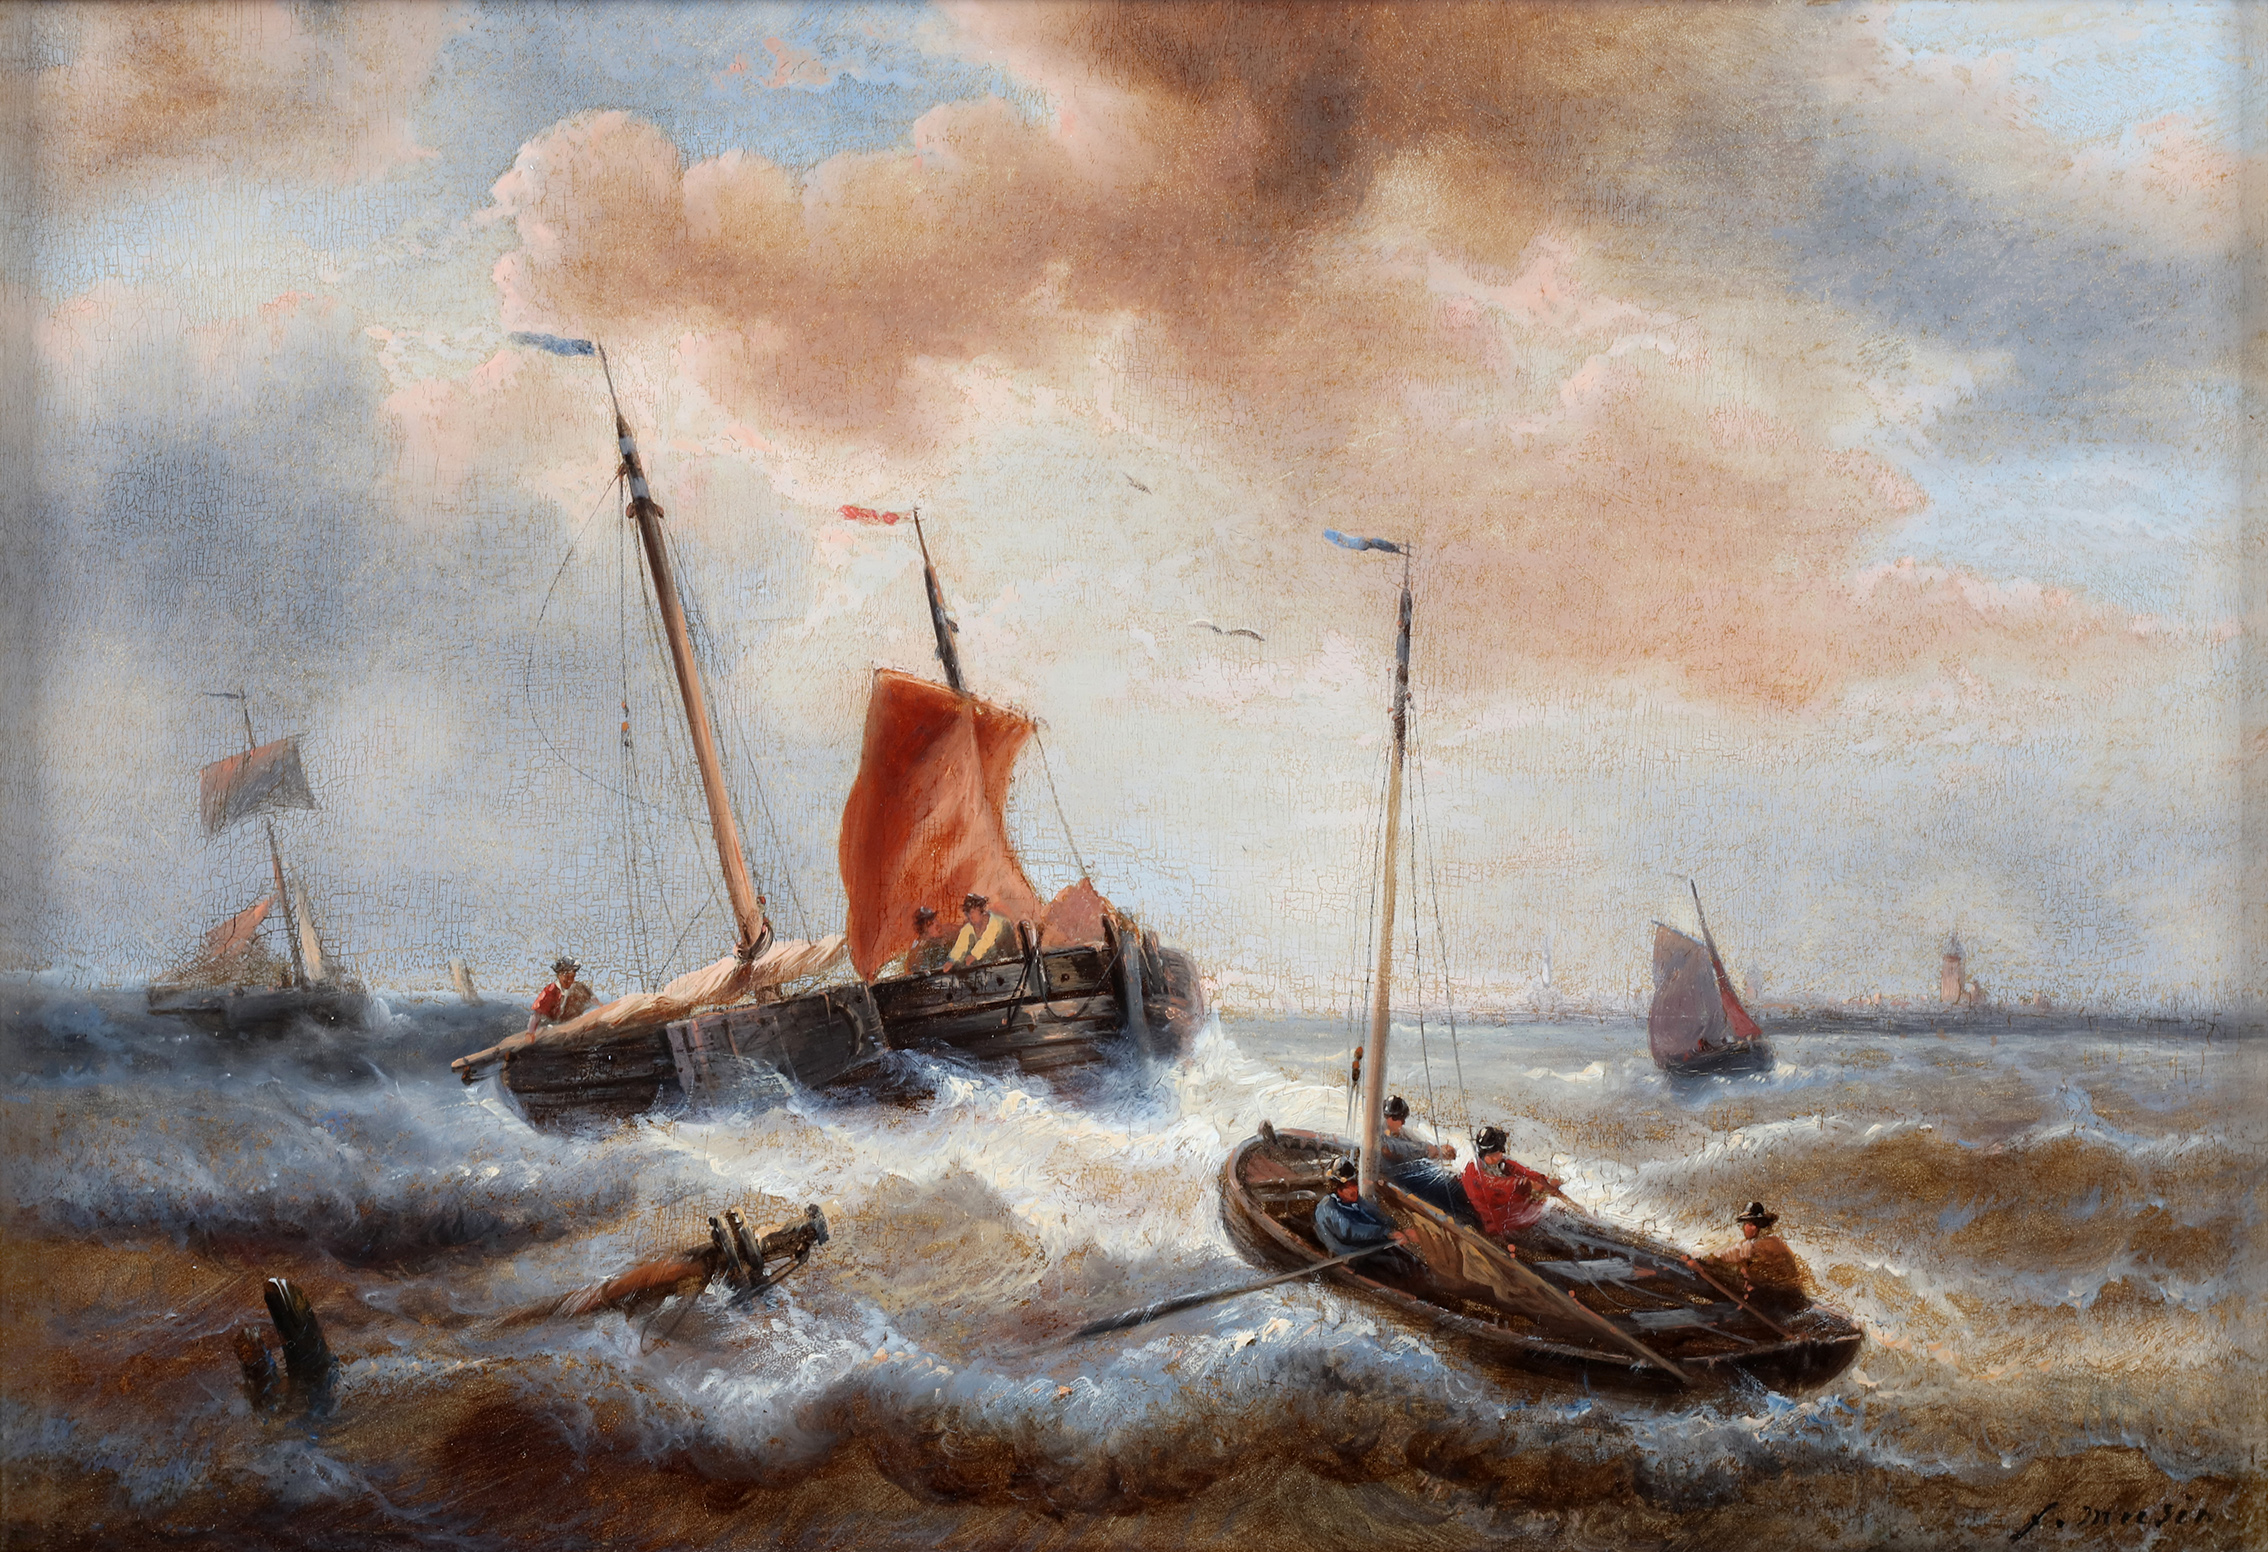 Ships in stormy weather